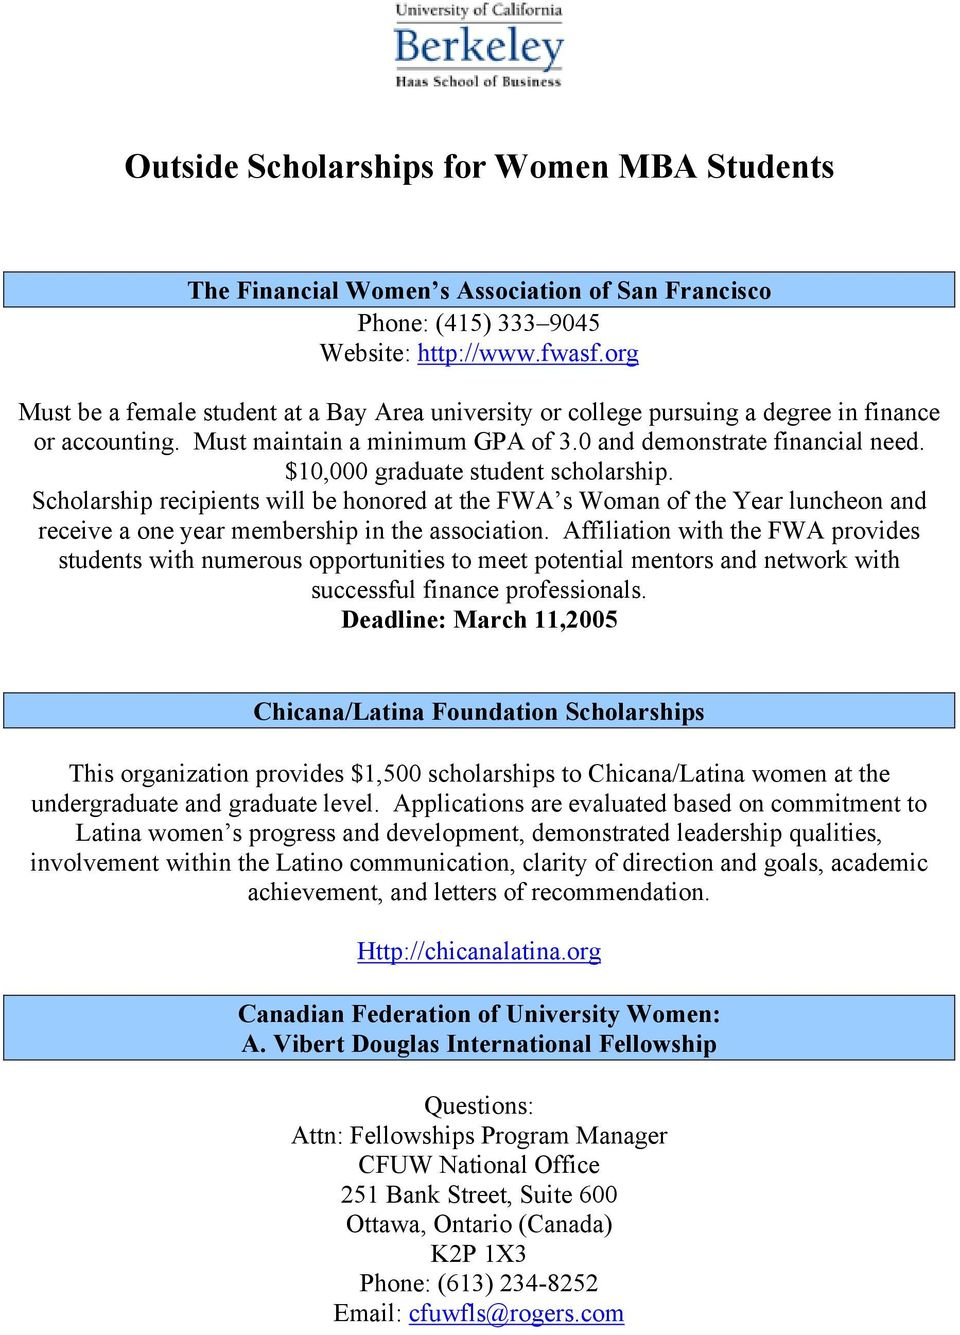 $10,000 graduate student scholarship. Scholarship recipients will be honored at the FWA s Woman of the Year luncheon and receive a one year membership in the association.